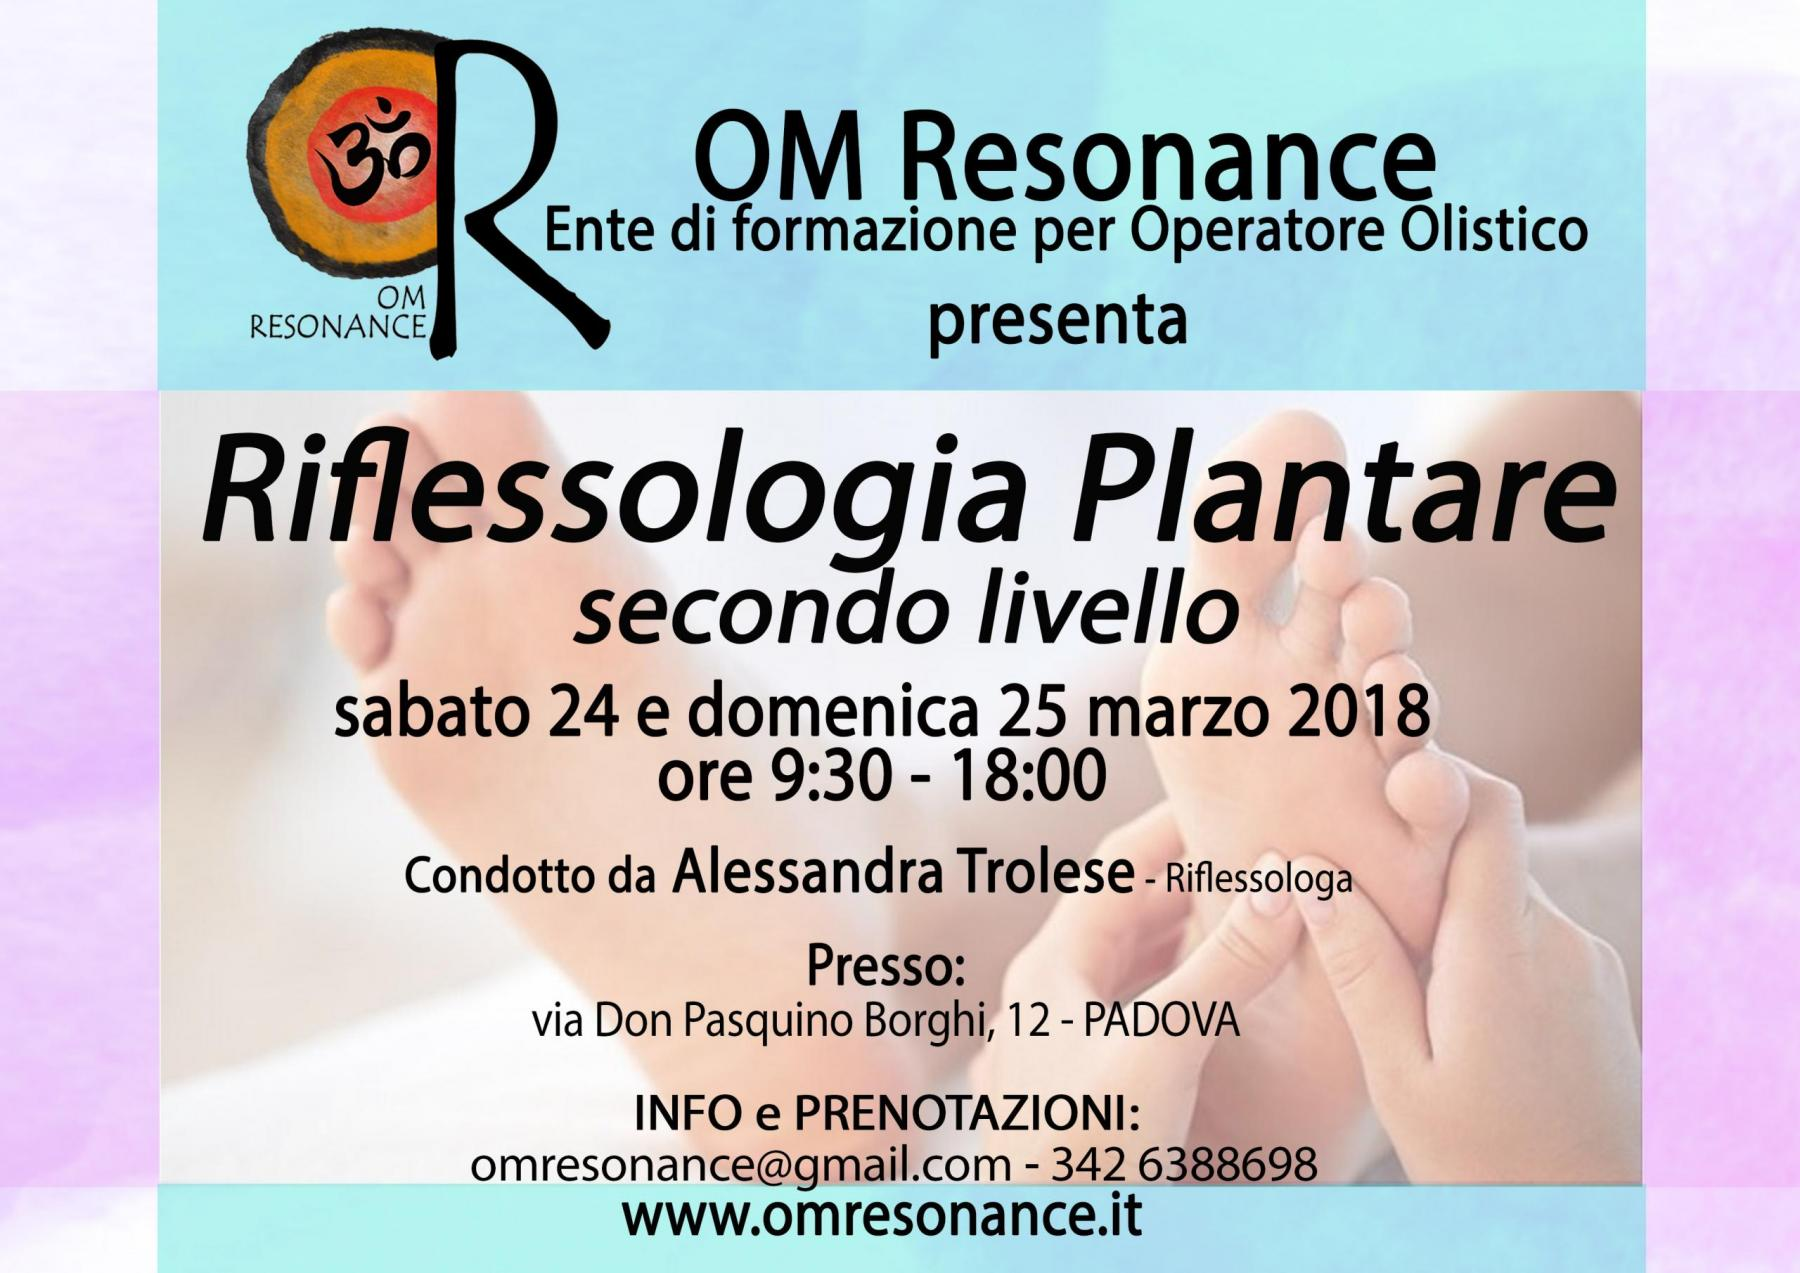 PADOVA riflessologia plantare 2 OM Resonance